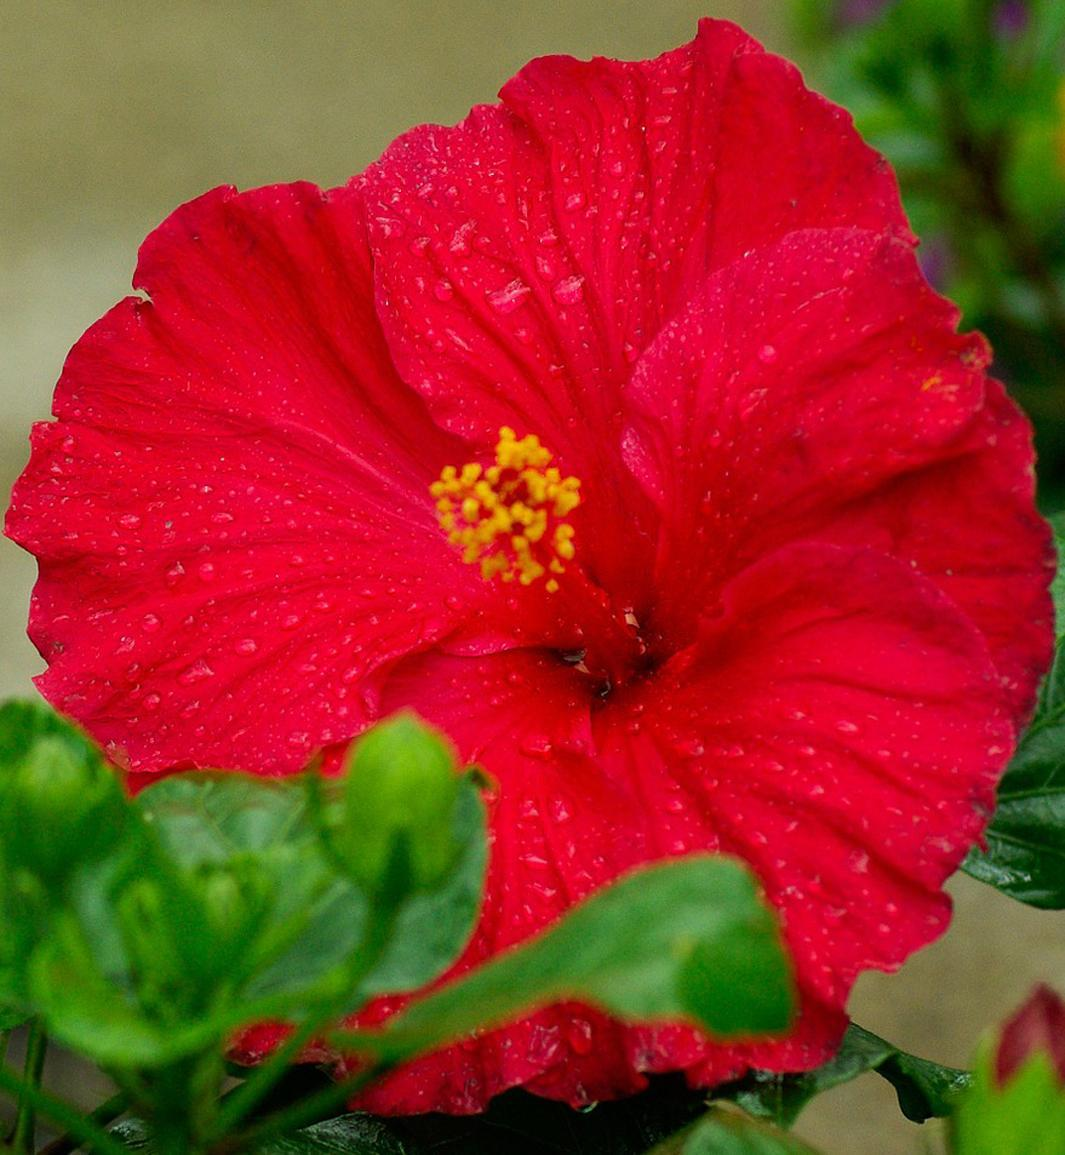 Hibiscus Come In Many Shapes And Sizes Landscape Ontario